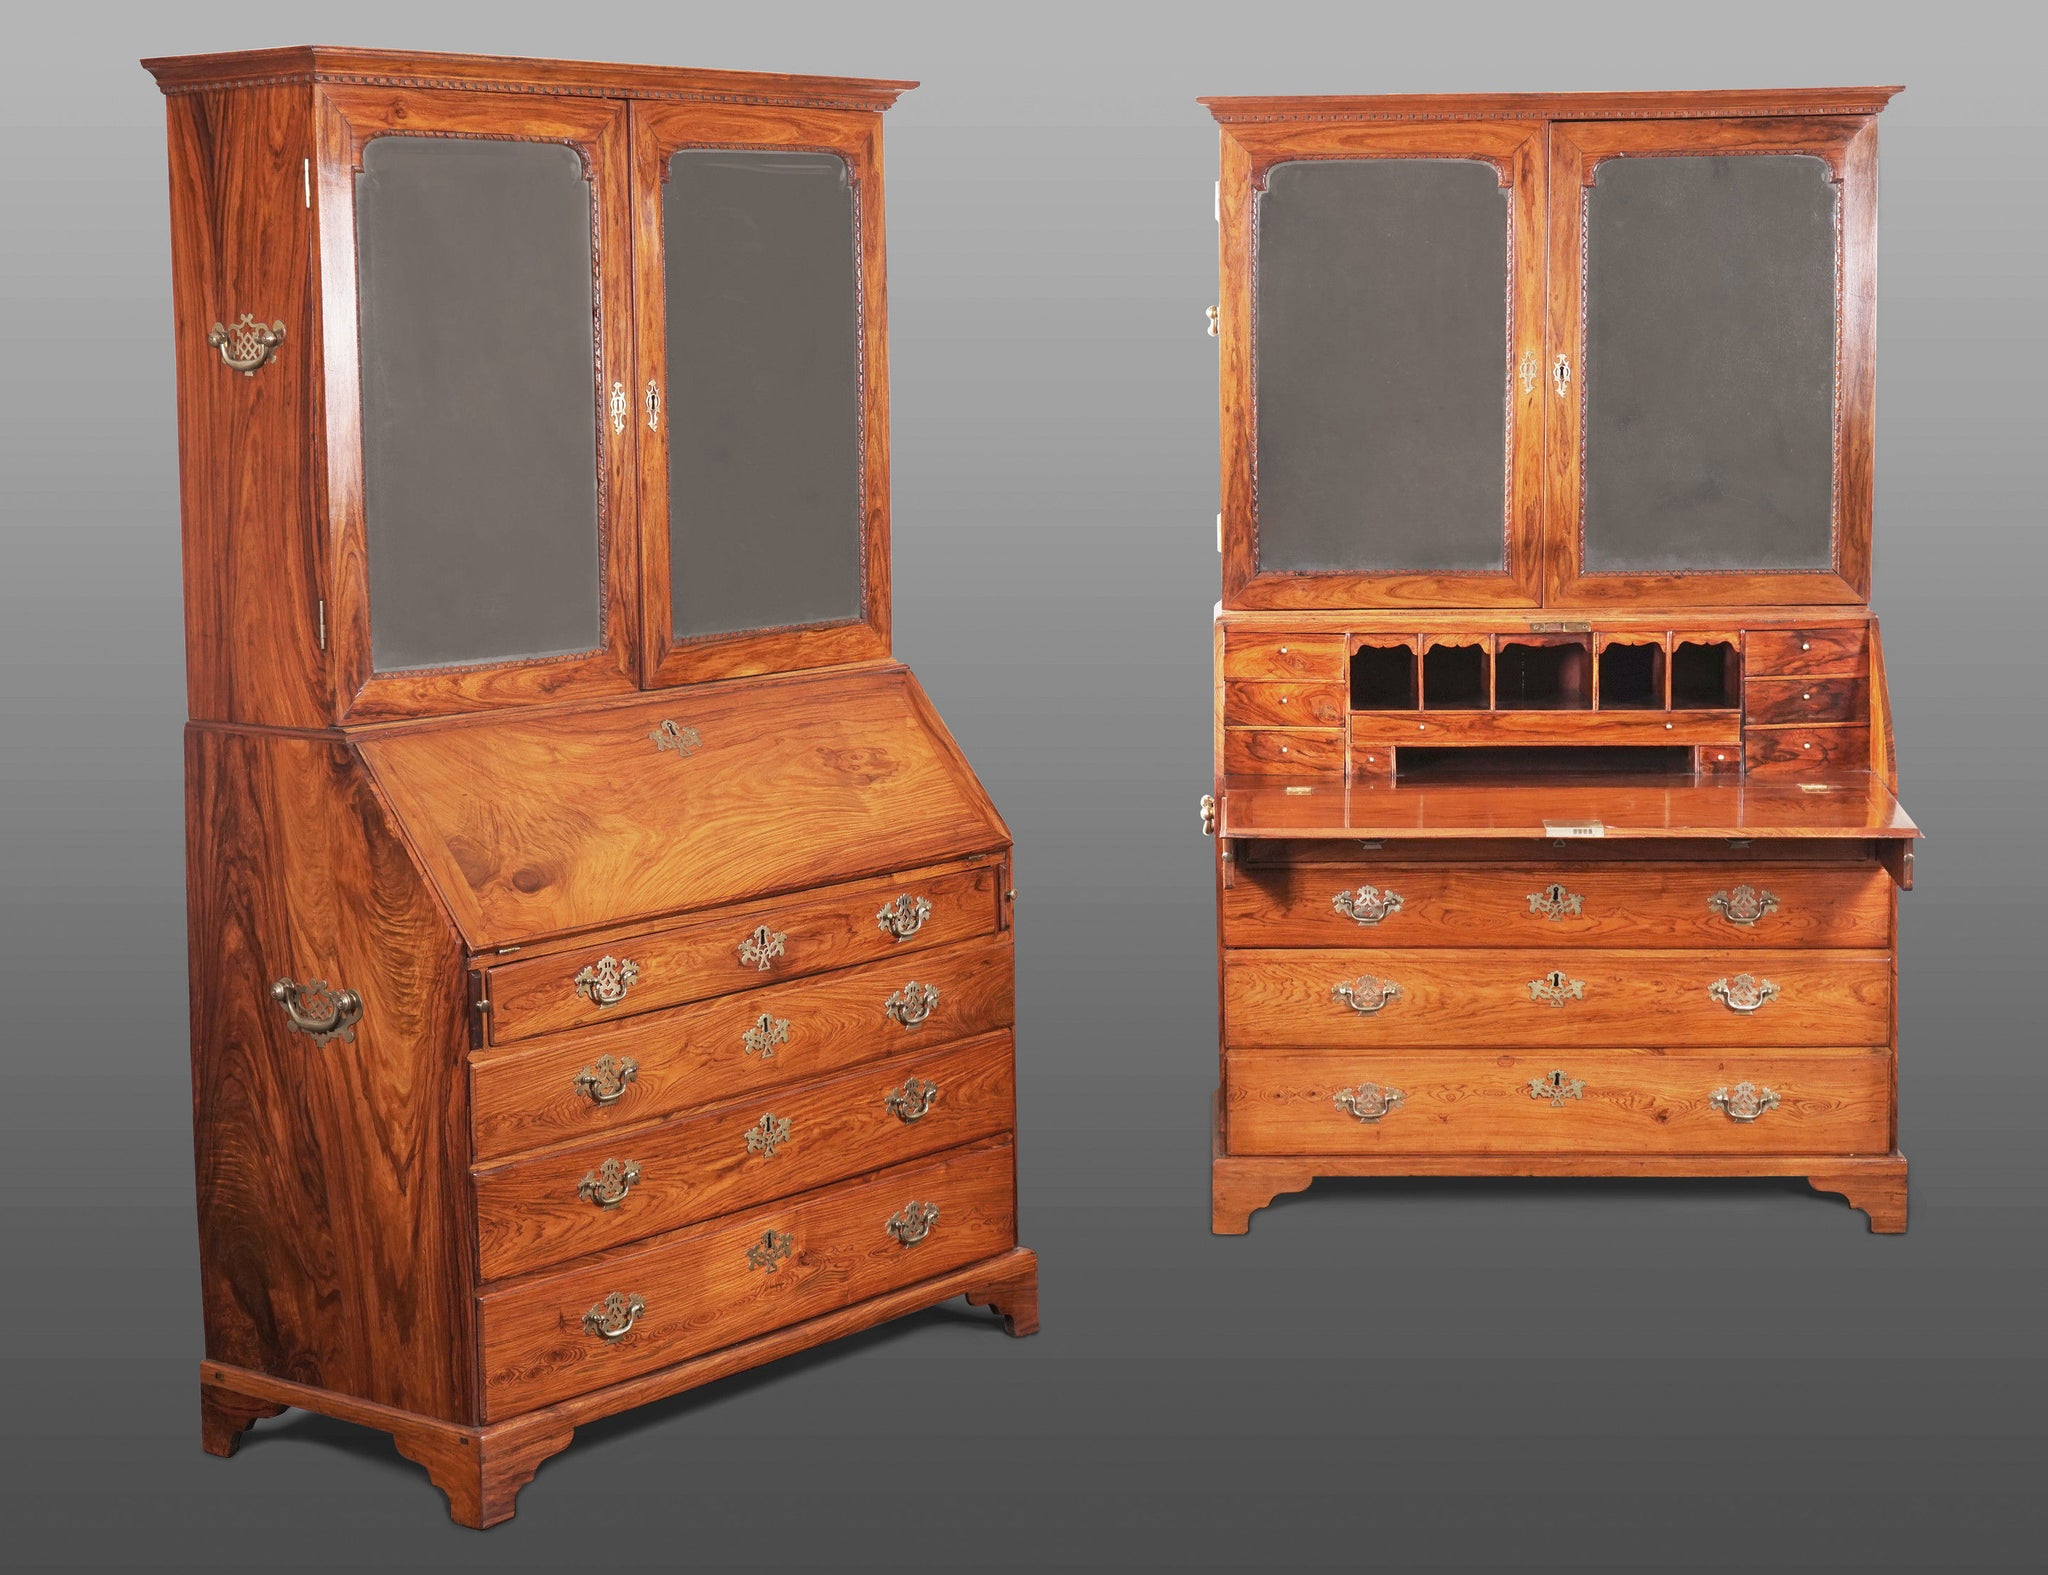 A Unique Pair of Chinese Qianlong Period Huanghuali Bureau Cabinets